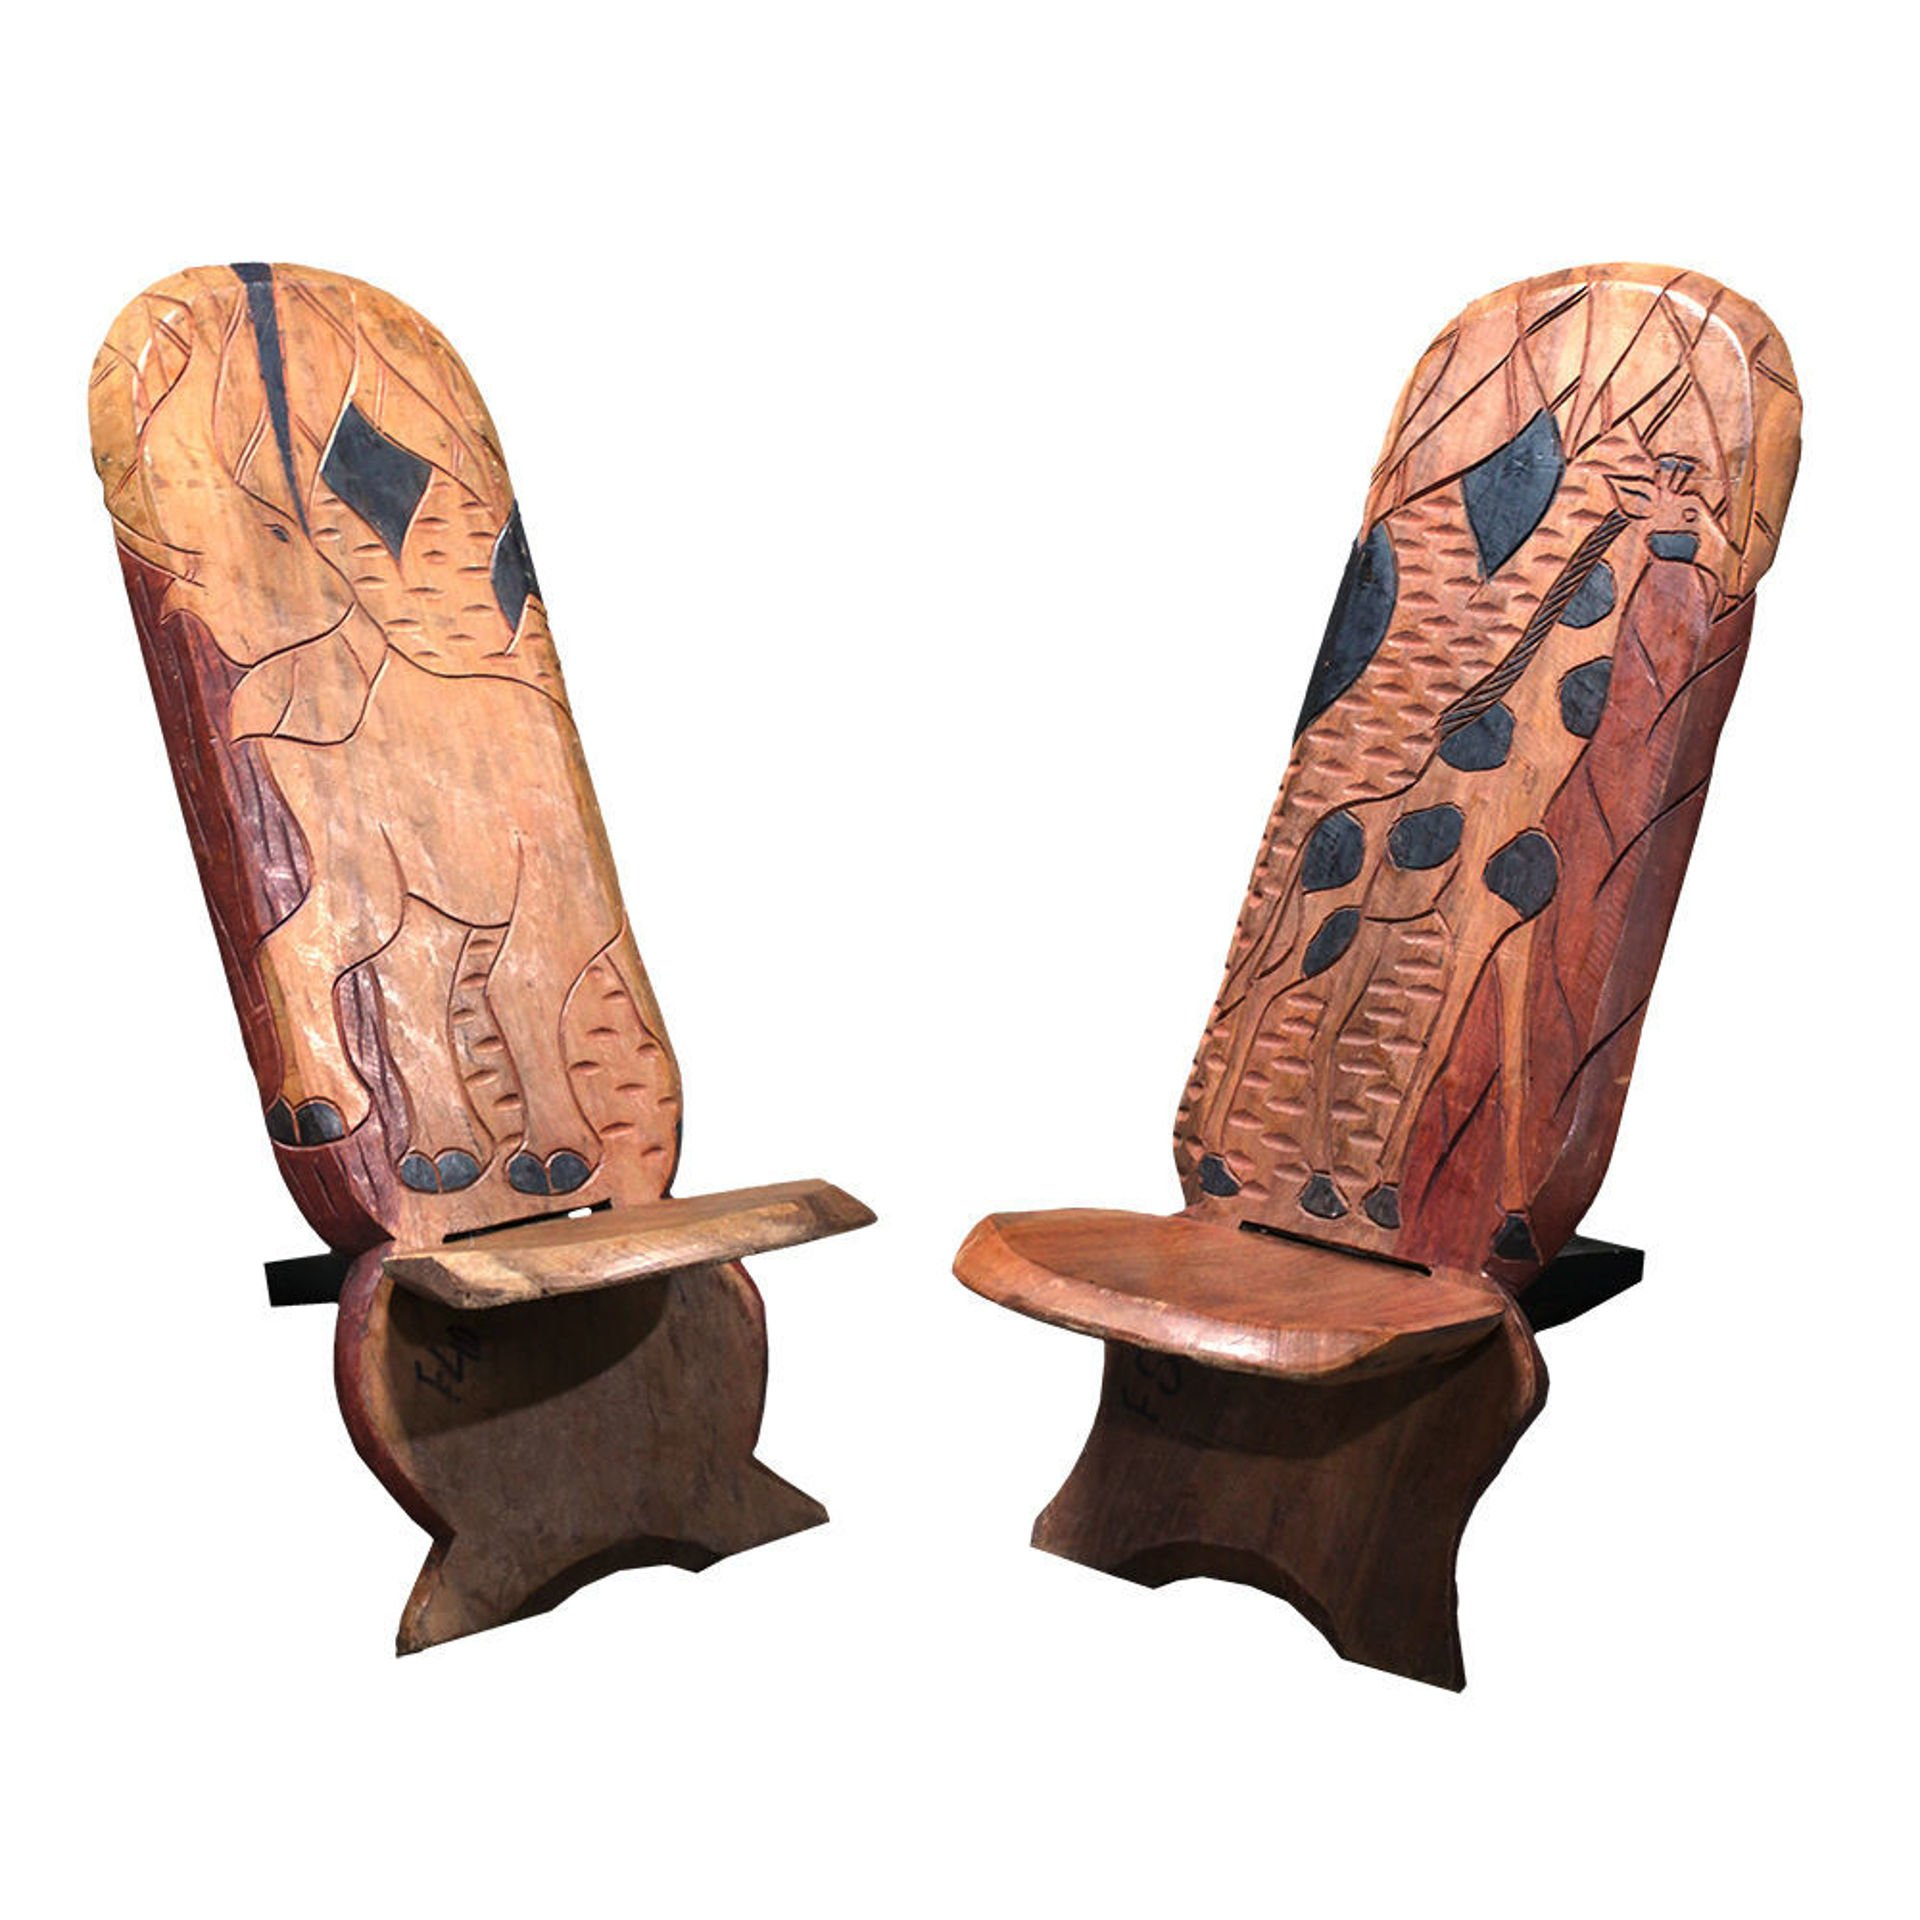 Picture of Large Senegalese Wood Carved Chair